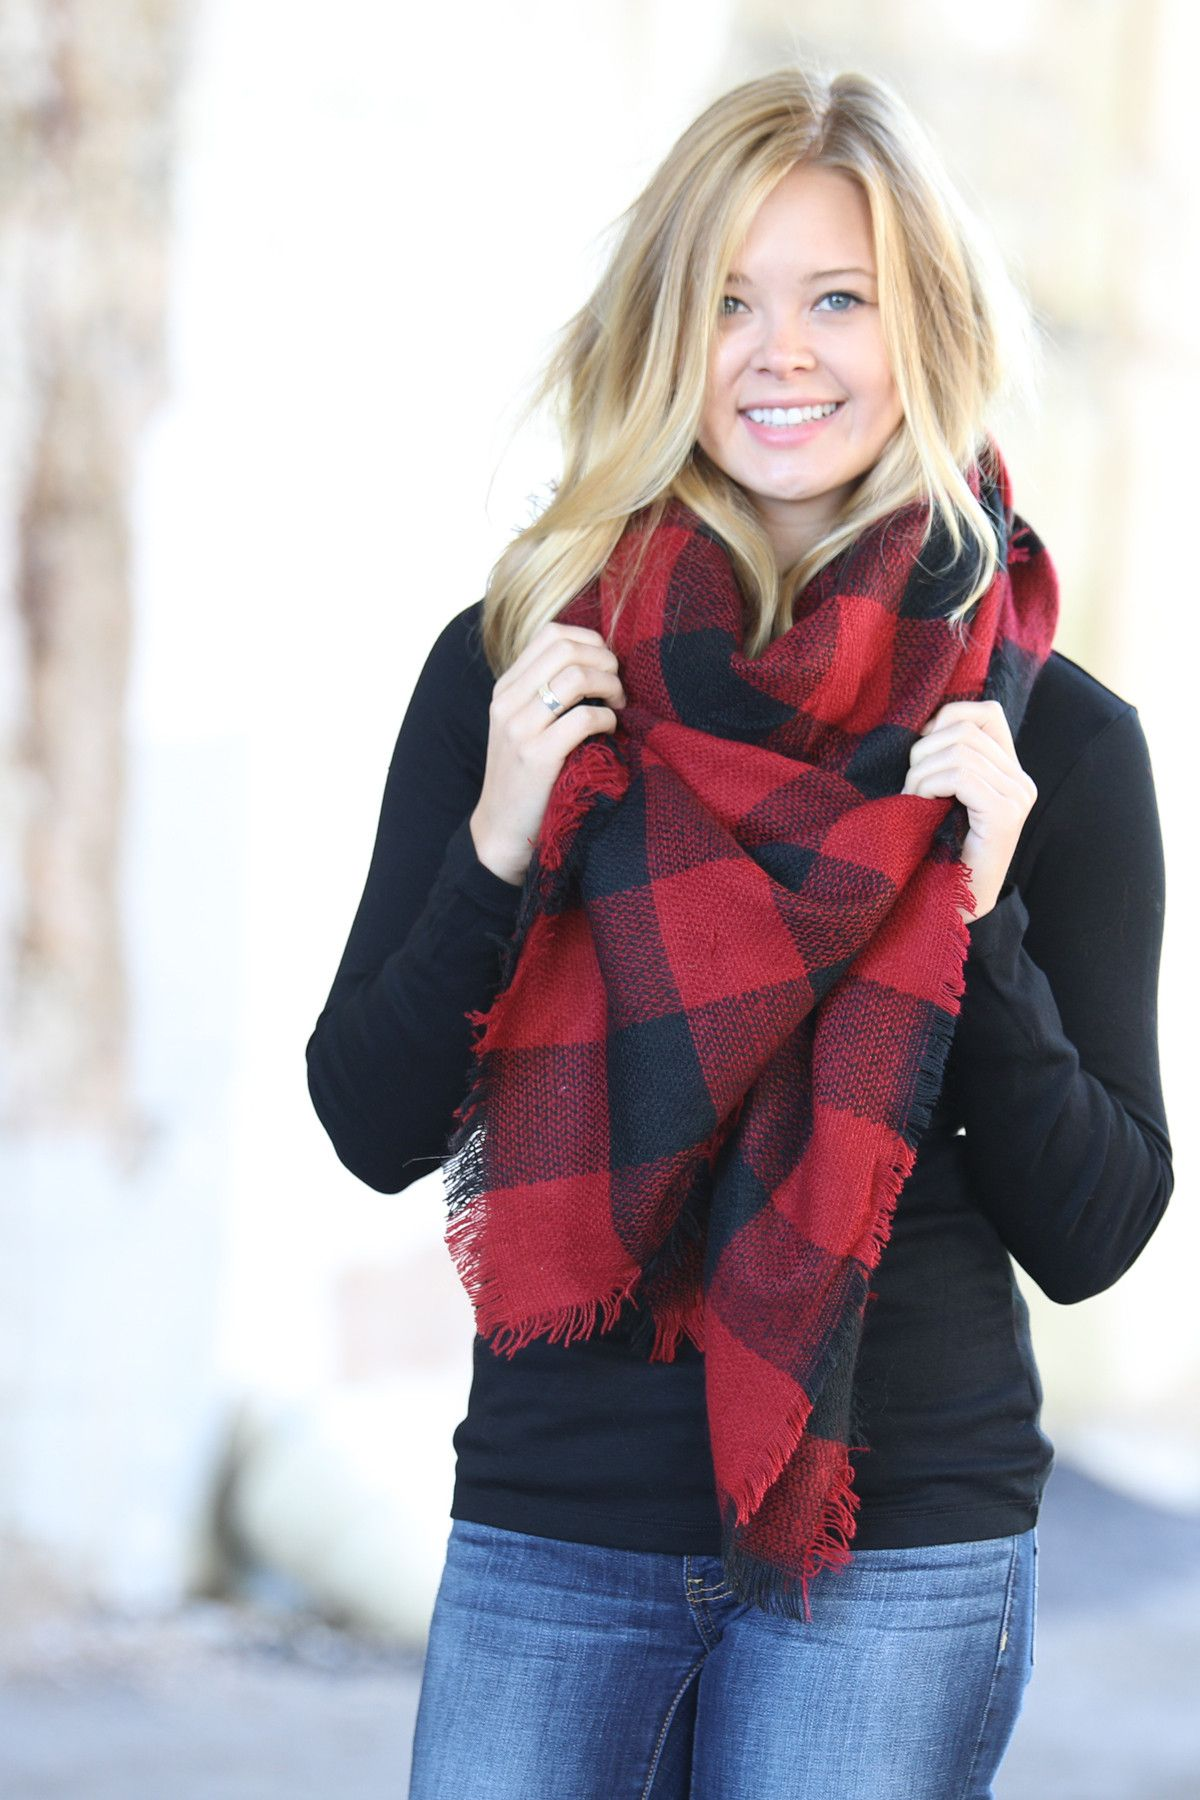 We are so excited to launch our 2016 Pattern Collection of blanket scarves! We LOVE the staple of plaid, but now we are bringing you a collection with beautiful patterned options! Same fabulous fabric